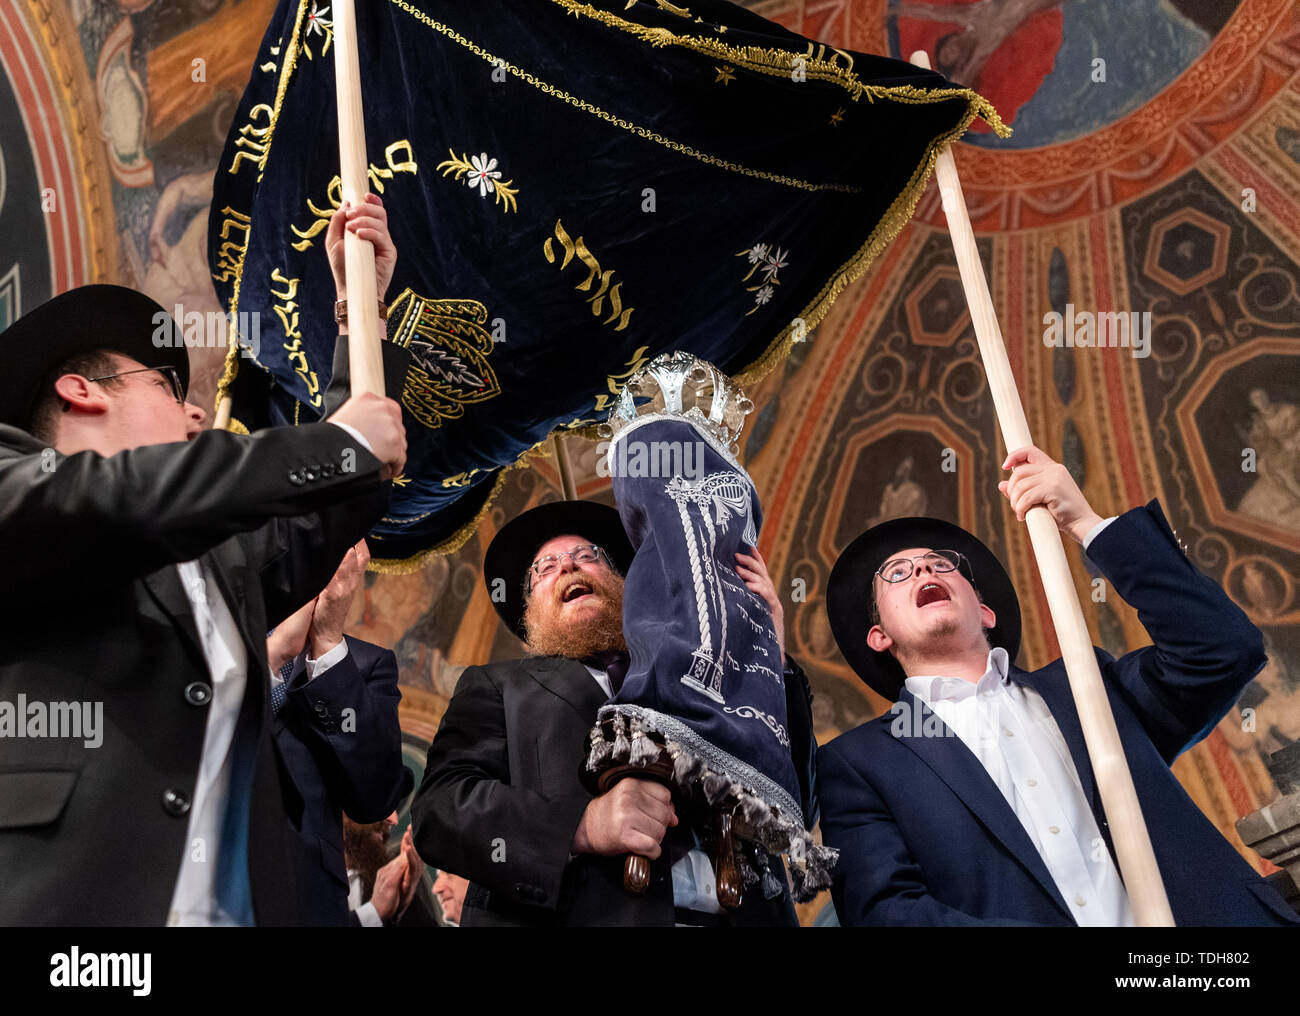 Dresden, Germany. 16th June, 2019. Rabbi Shneor Havlin (M) and members of the Jewish community wear the new Tora role for Dresden from the town hall after the ceremonial inauguration. Credit: Robert Michael/dpa-Zentralbild/dpa/Alamy Live News - Stock Image